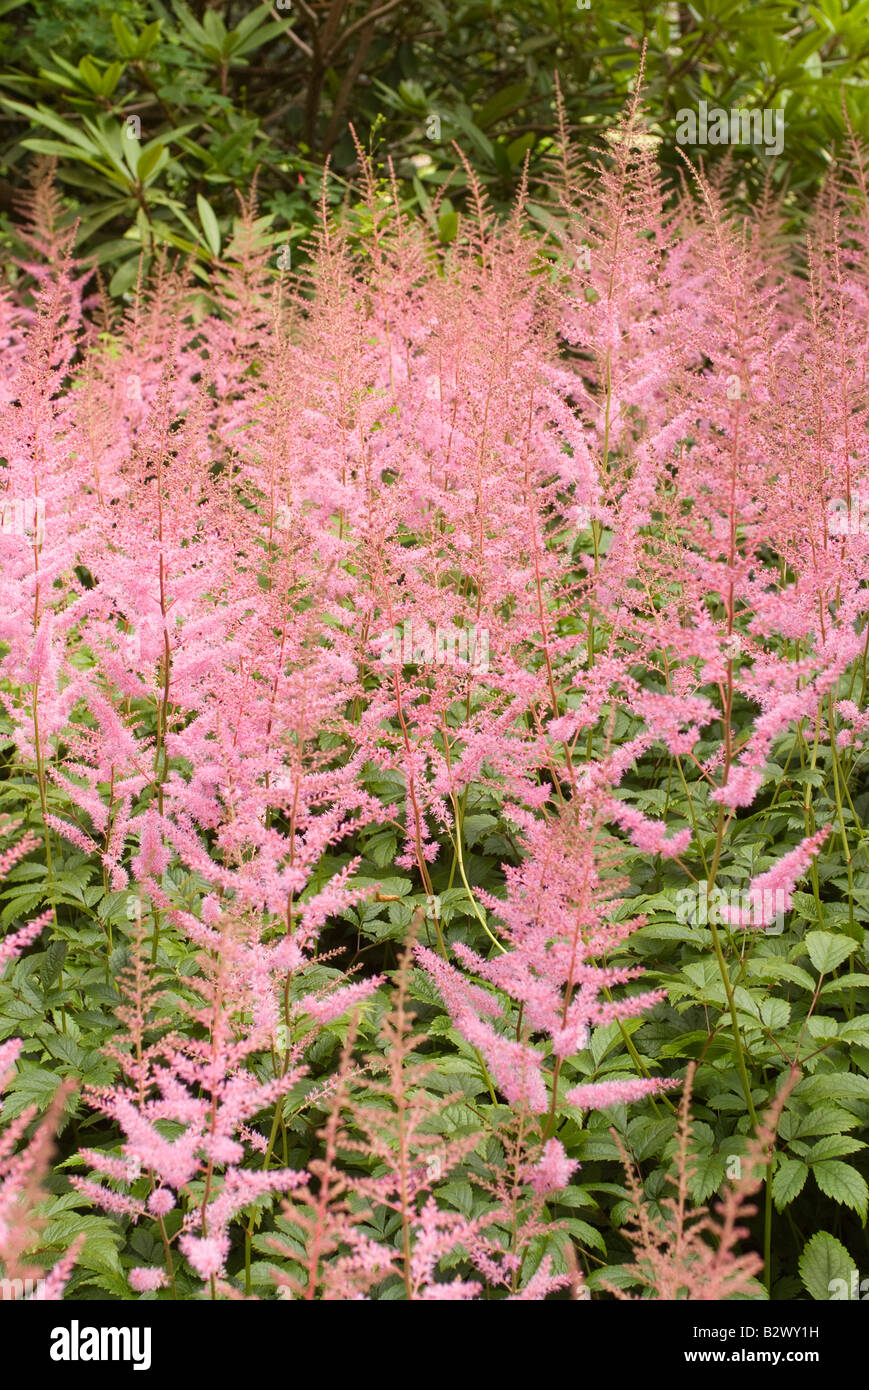 Pleasing Wispy Pink Astilbe Chinensis Flowers At Logan Botanic Garden  With Foxy Stock Photo  Wispy Pink Astilbe Chinensis Flowers At Logan Botanic Garden  Dumfries And Galloway Scotland United Kingdom With Divine Design Your Garden Software Also Overgrown Garden In Addition Bonnies Oak Garden Centre And Mark And Spencer Covent Garden As Well As Fairfield Garden Guest House Additionally Gardens In Cambridgeshire From Alamycom With   Foxy Wispy Pink Astilbe Chinensis Flowers At Logan Botanic Garden  With Divine Stock Photo  Wispy Pink Astilbe Chinensis Flowers At Logan Botanic Garden  Dumfries And Galloway Scotland United Kingdom And Pleasing Design Your Garden Software Also Overgrown Garden In Addition Bonnies Oak Garden Centre From Alamycom